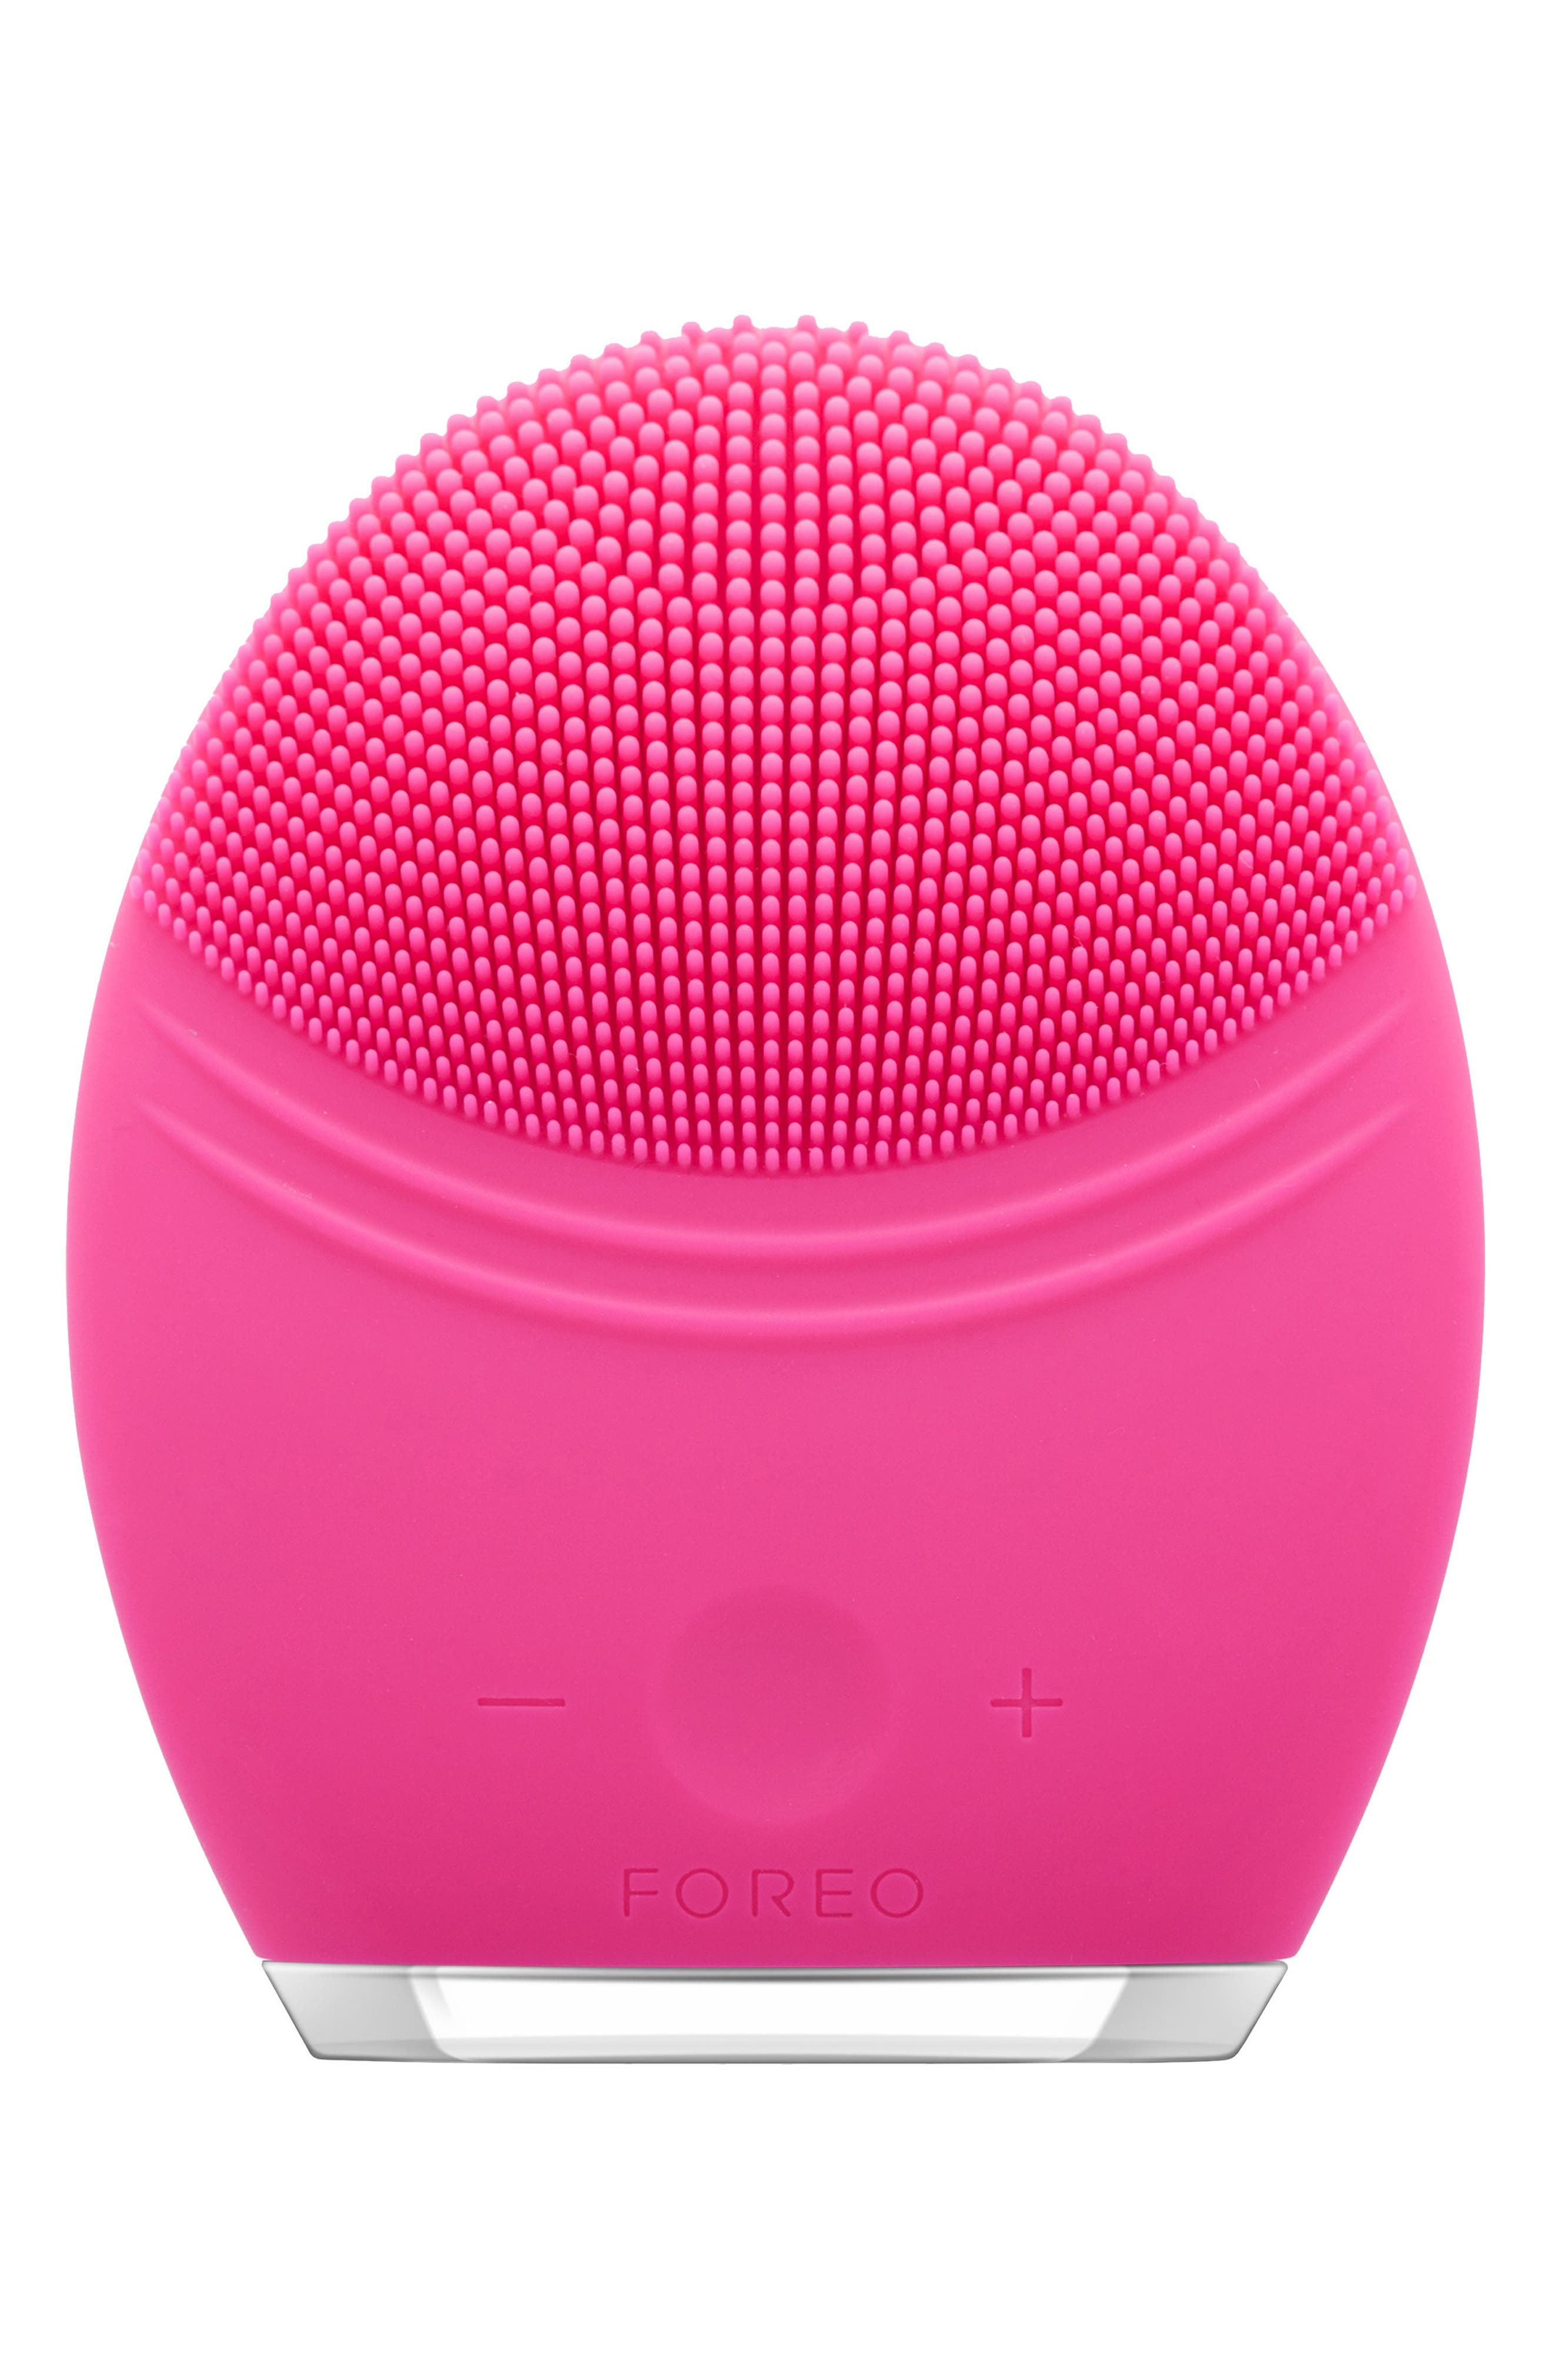 Alternate Image 1 Selected - FOREO LUNA™ 2 Pro Facial Cleansing & Anti-Aging Device